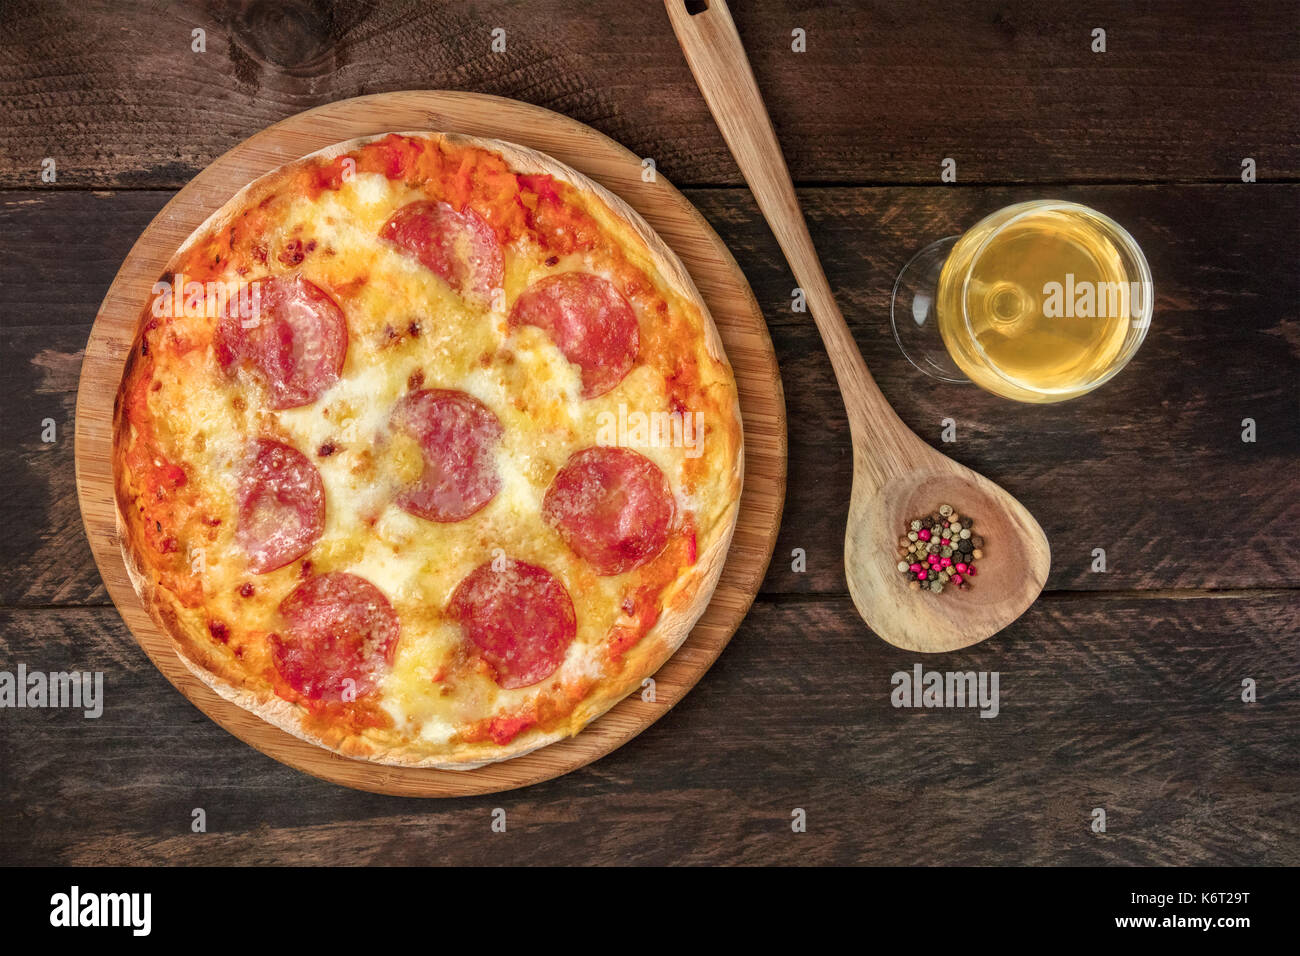 Pepperoni pizza with white wine, peppercorns, and copyspace - Stock Image